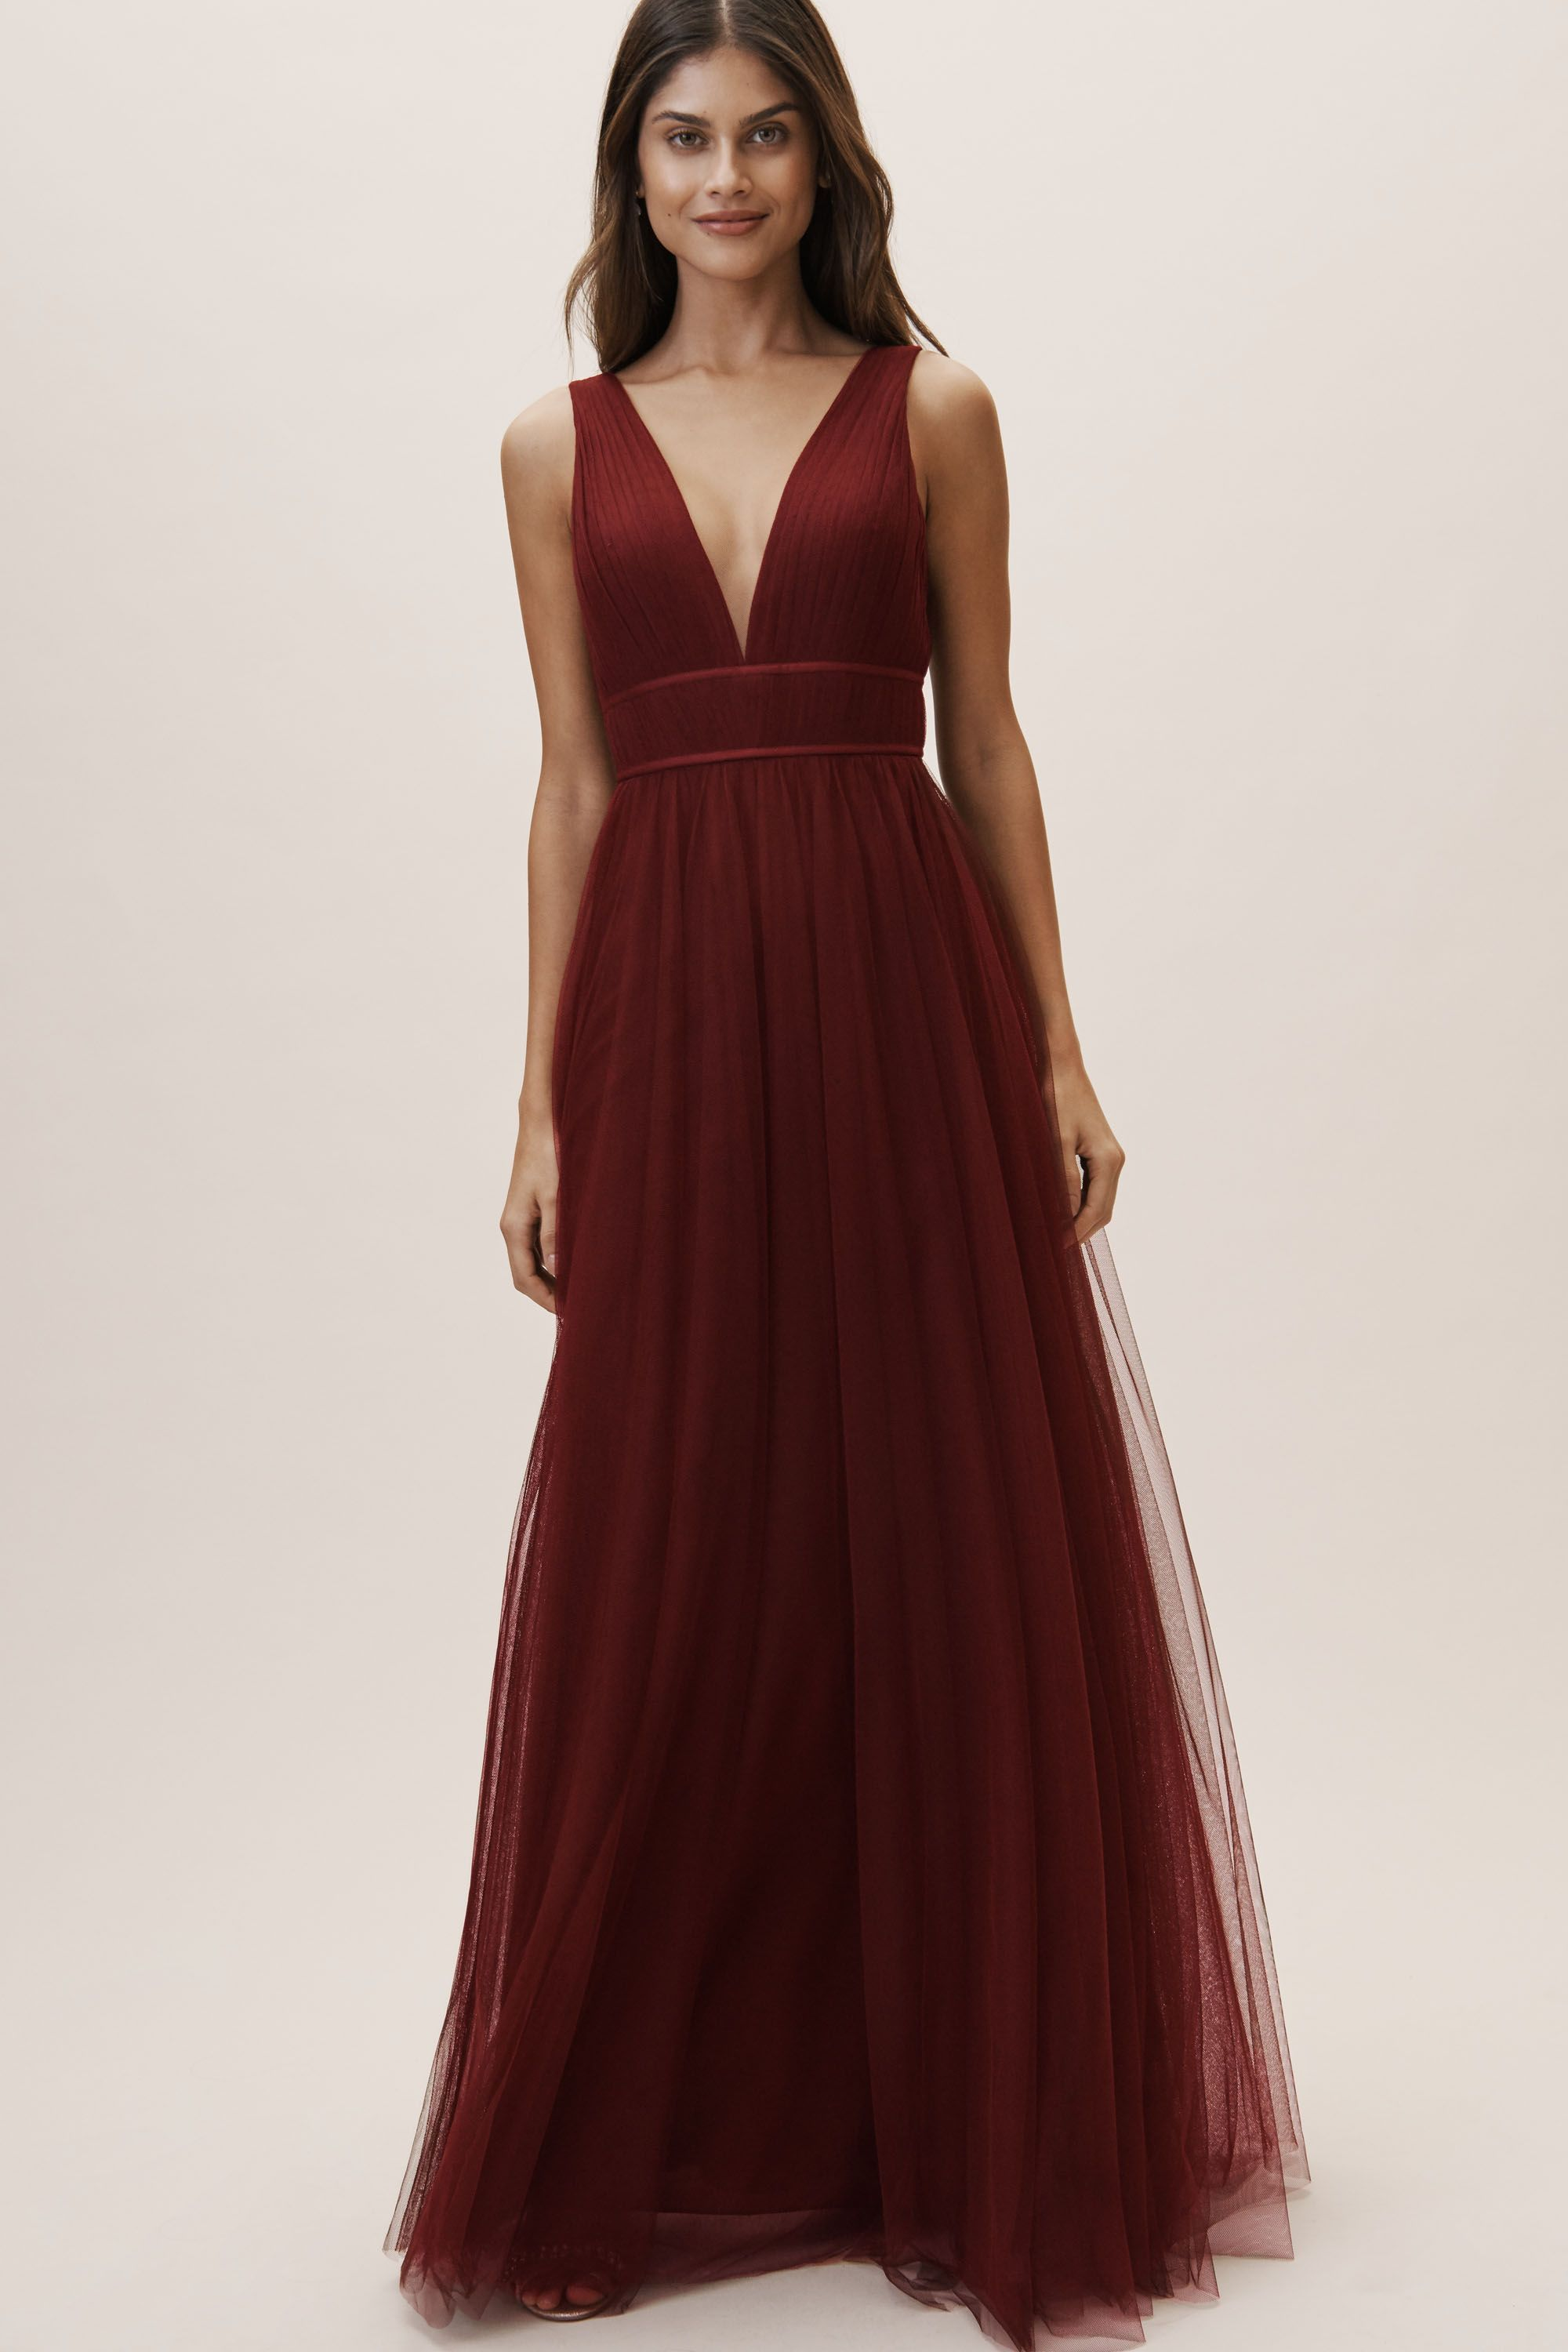 Pin By Lpscalard On Dresses In 2021 Wine Color Bridesmaid Dress Dresses Bridesmaid Dresses [ 3000 x 2000 Pixel ]